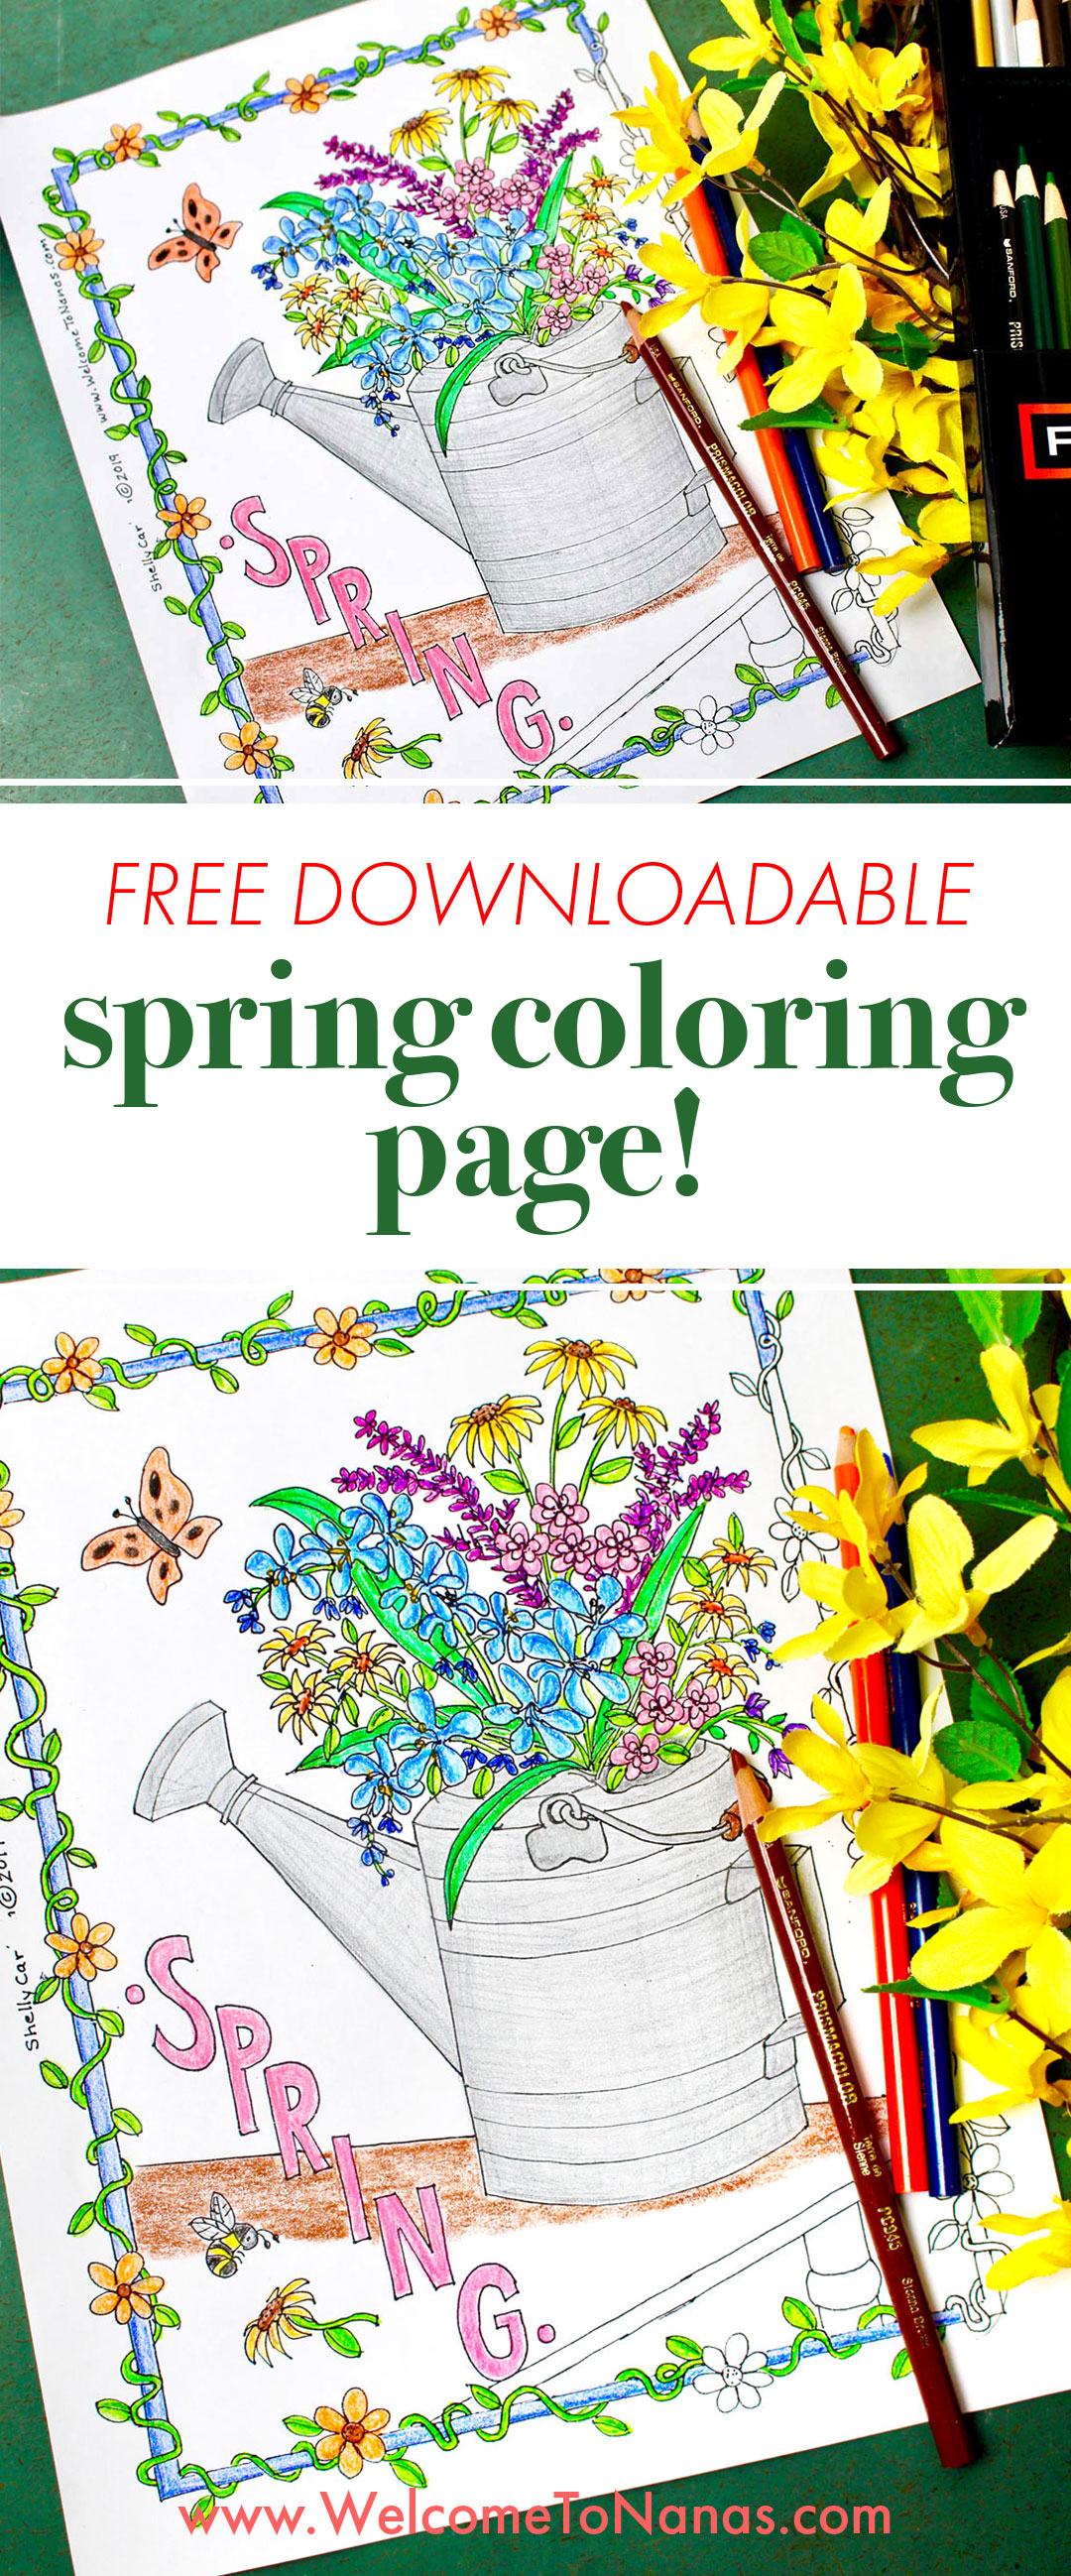 Hello Spring Activity Book for Kids Ages 4-8: Fun Spring Coloring Pages,  Dot to Dot, Mazes, Games, Puzzles and More!: Press, Mew: 9798613887163:  Amazon.com: Books | 2597x1080